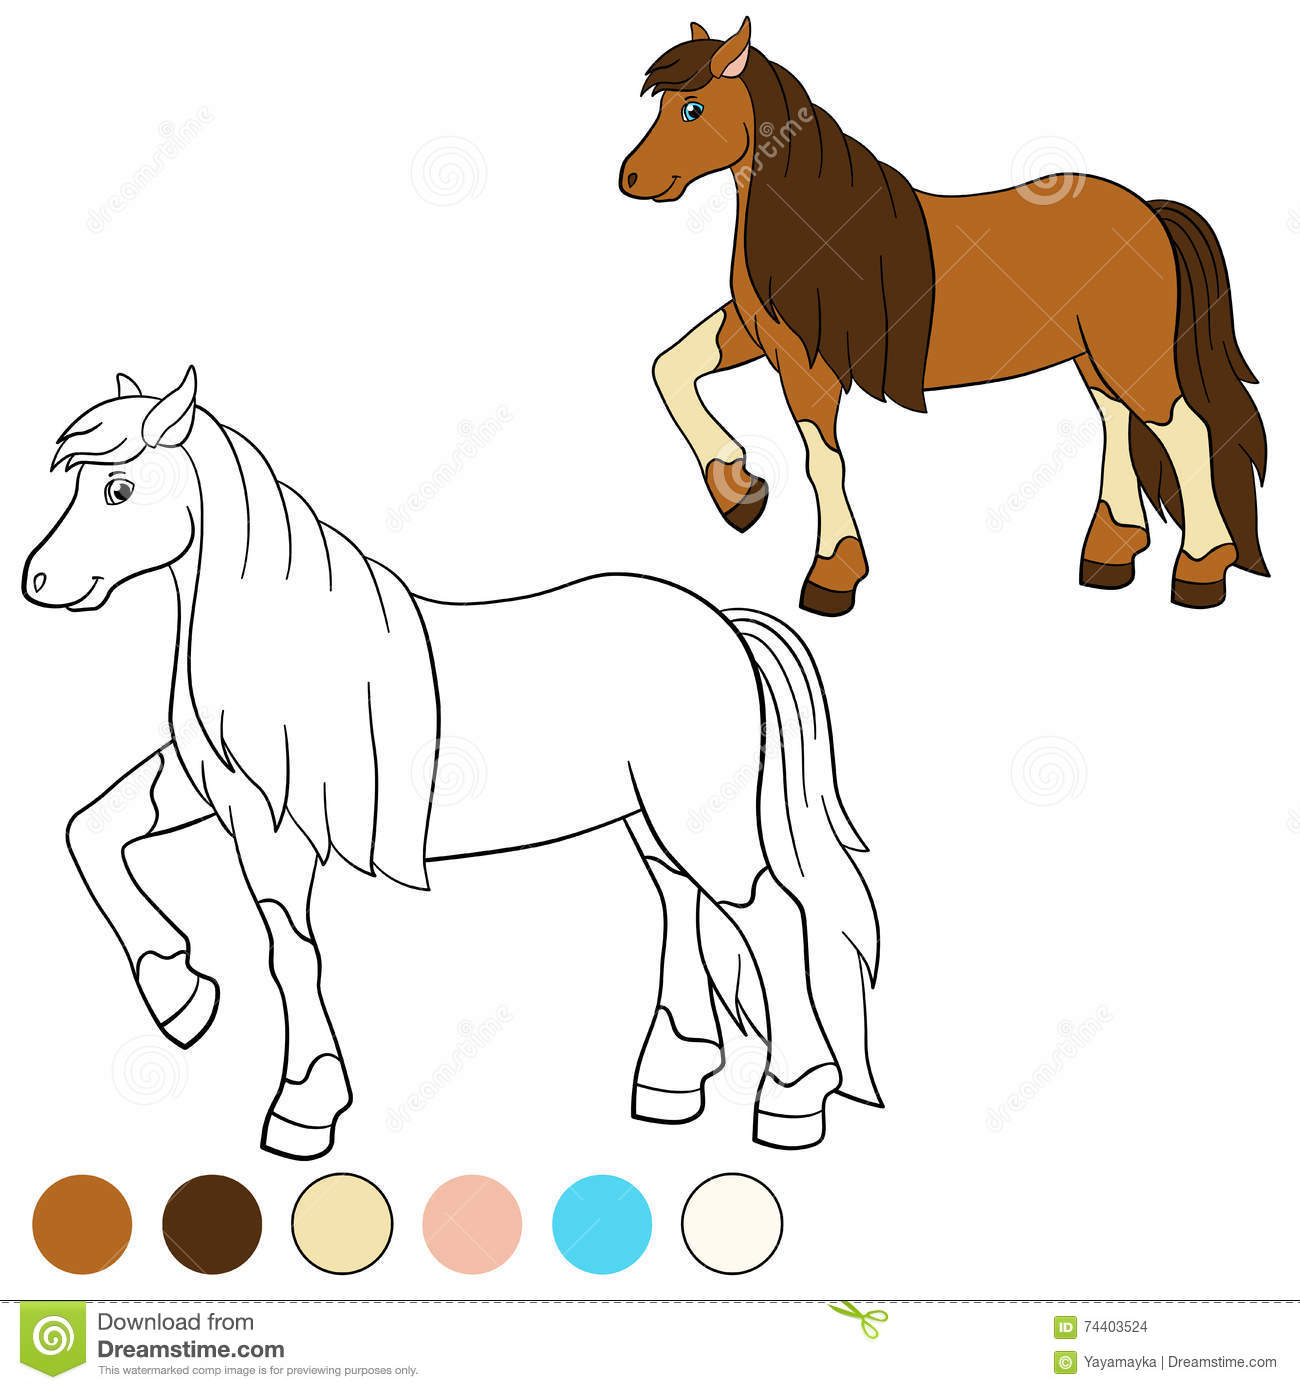 Coloring Page Color Me Horse Cute Horse Stock Vector Illustration Of Drawing Child 74403524